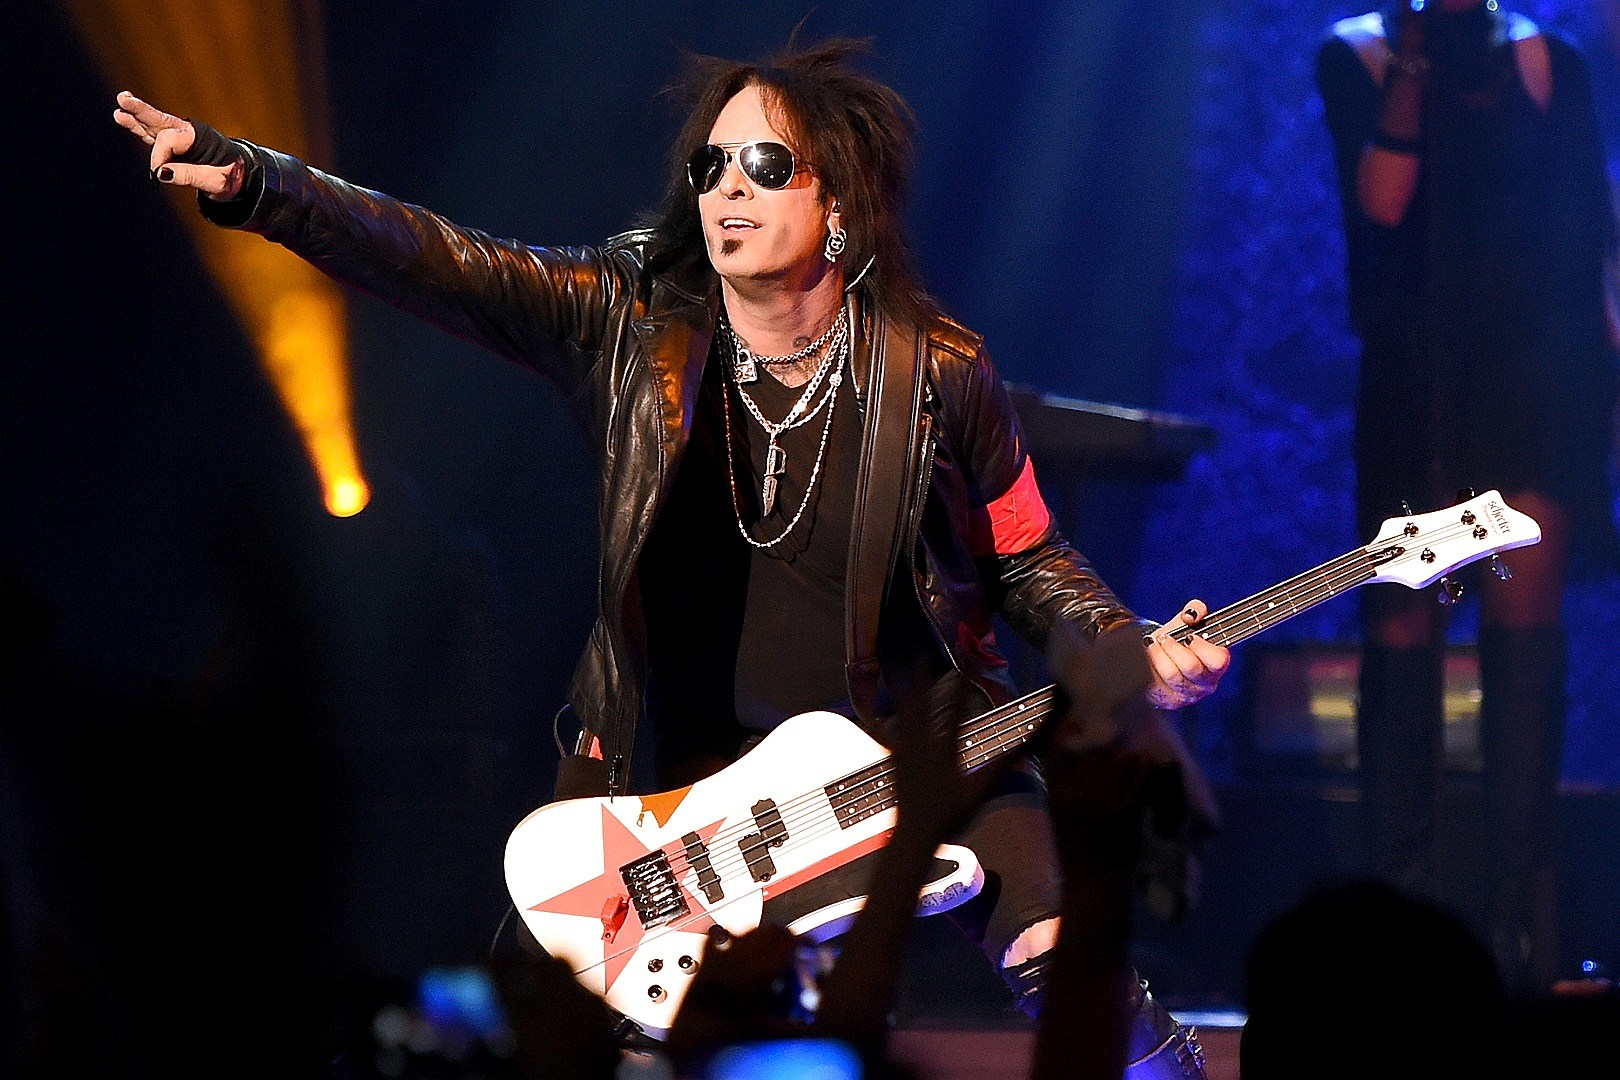 Motley Crue's Nikki Sixx Teasing 'Surprise That Will Confirm We're Out of Our Minds'